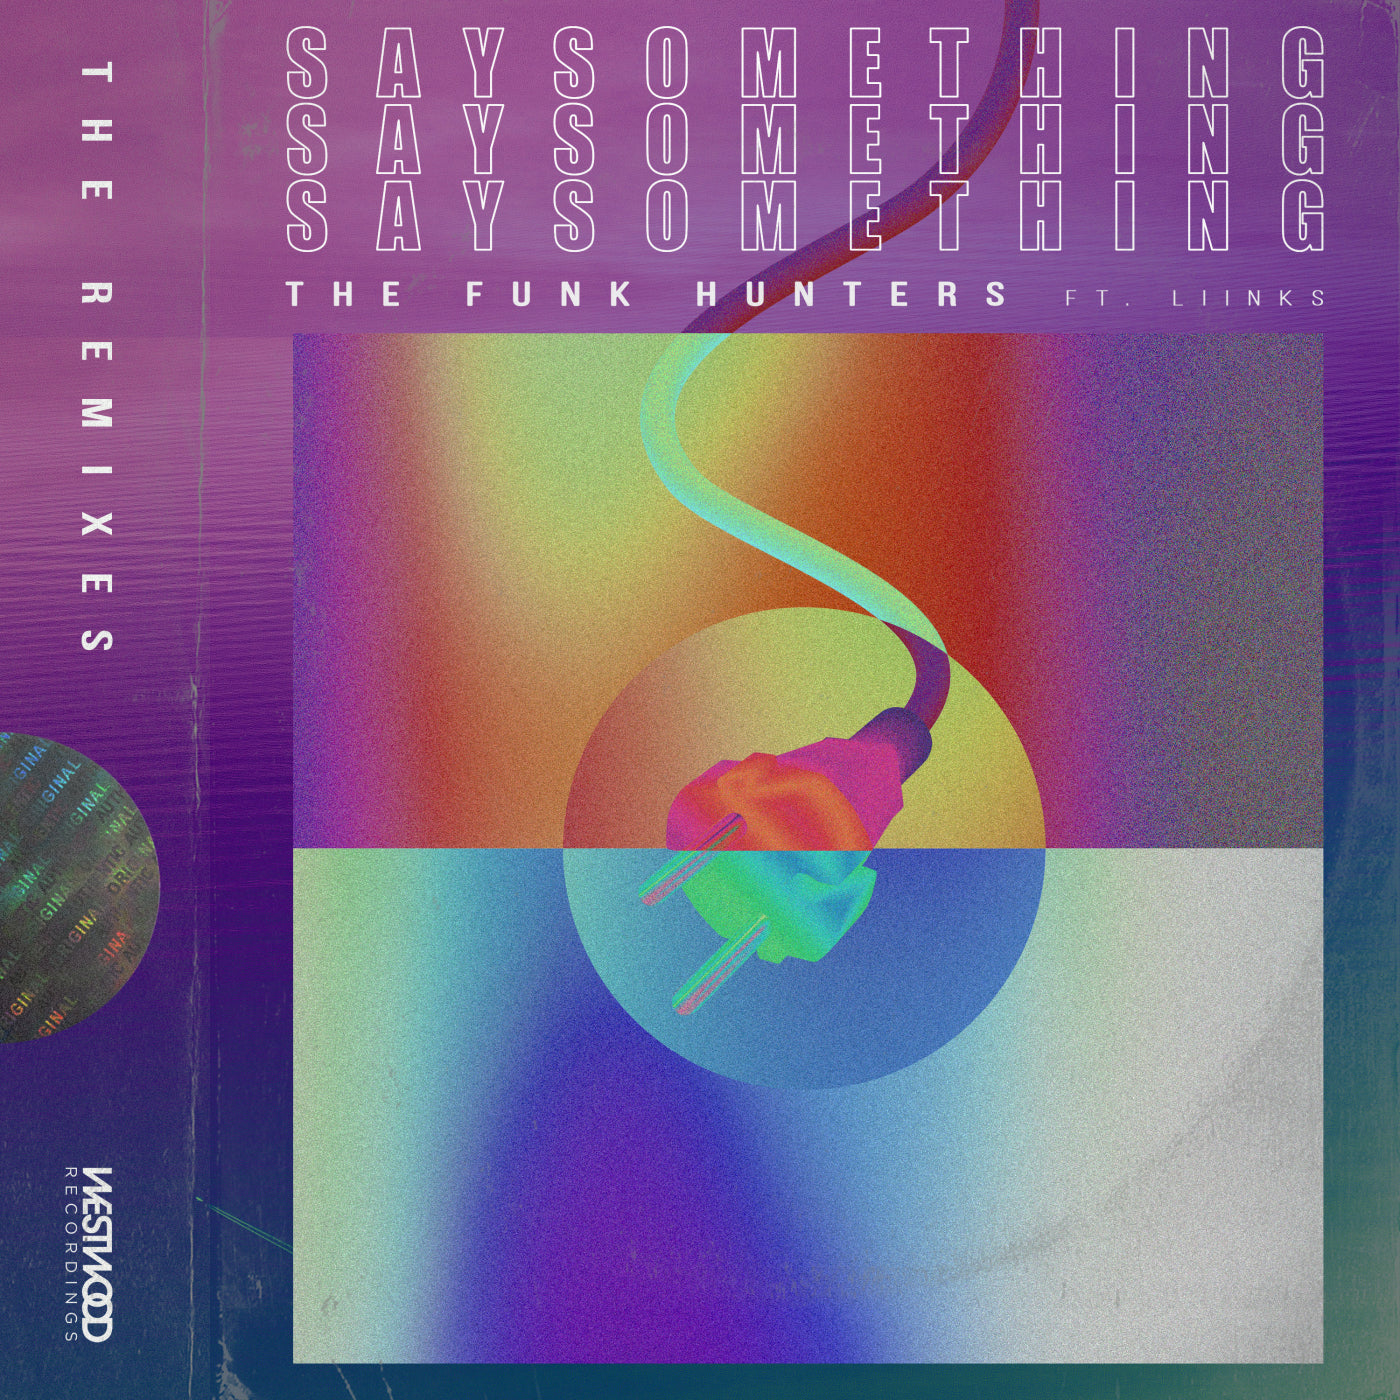 The Funk Hunters - Say Something feat. LIINKS (The Remixes)